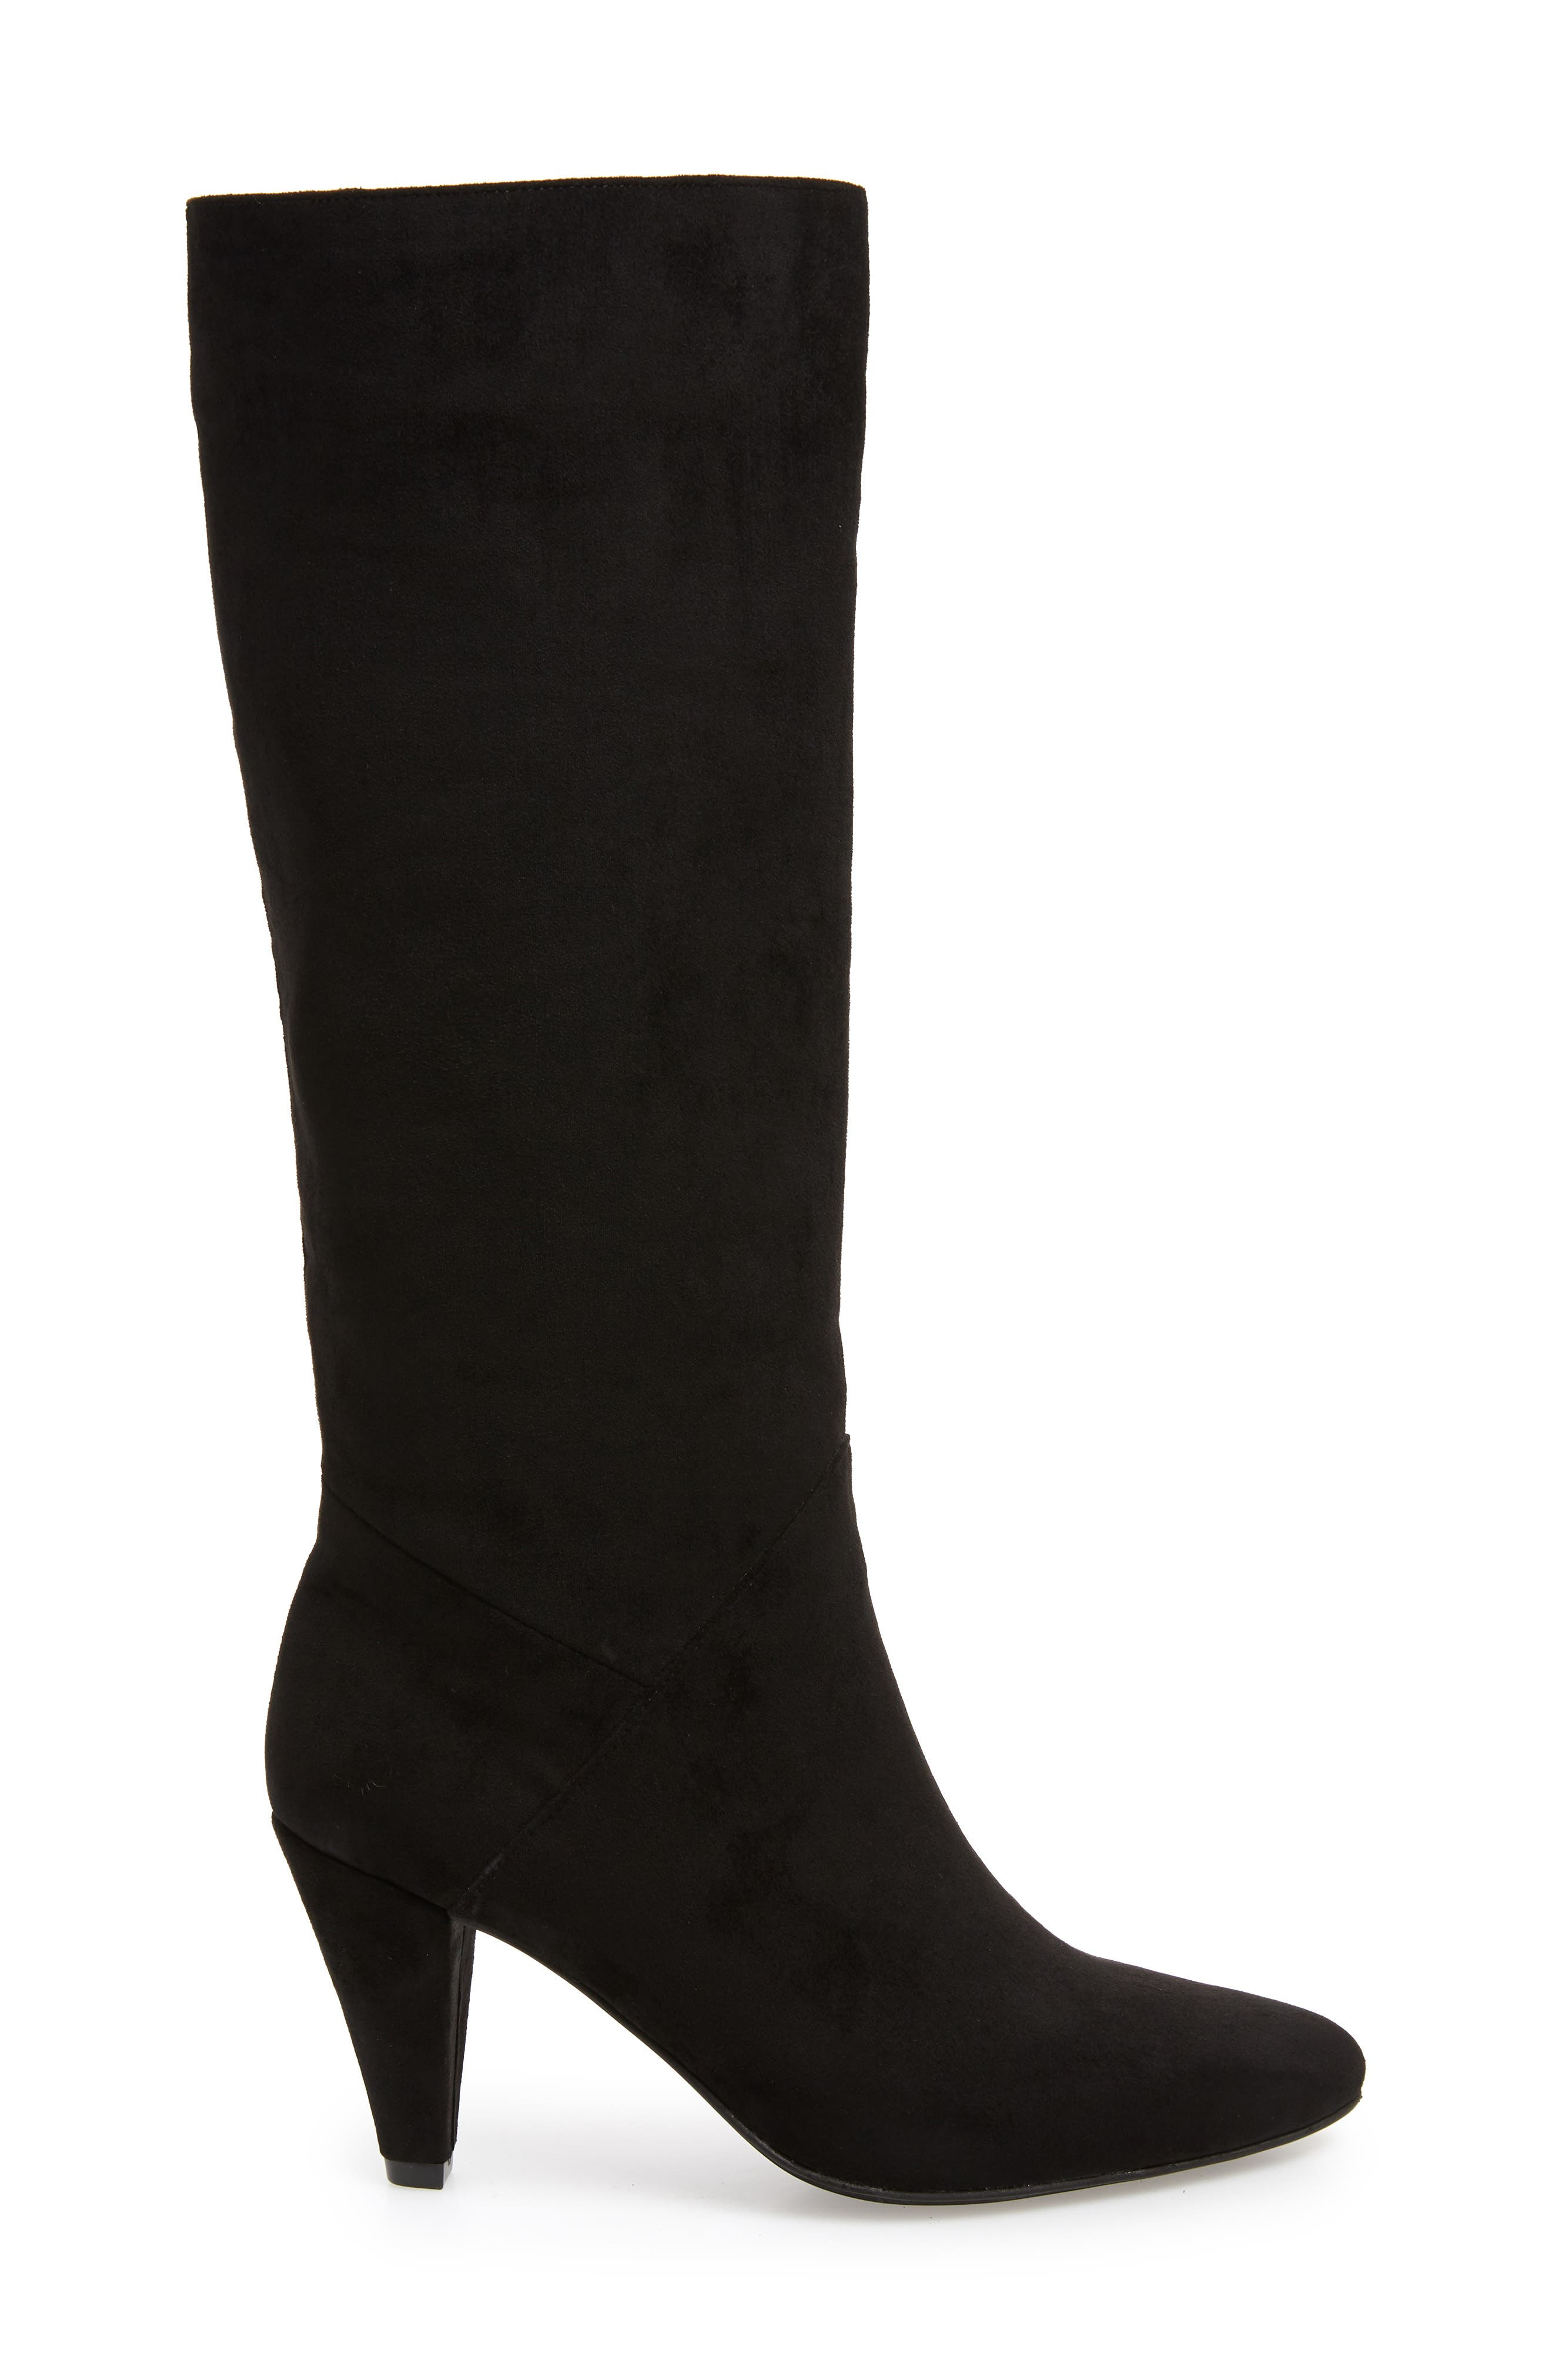 Jeffery Campbell Candle Knee High Boot,                             Alternate thumbnail 3, color,                             BLACK FAUX SUEDE